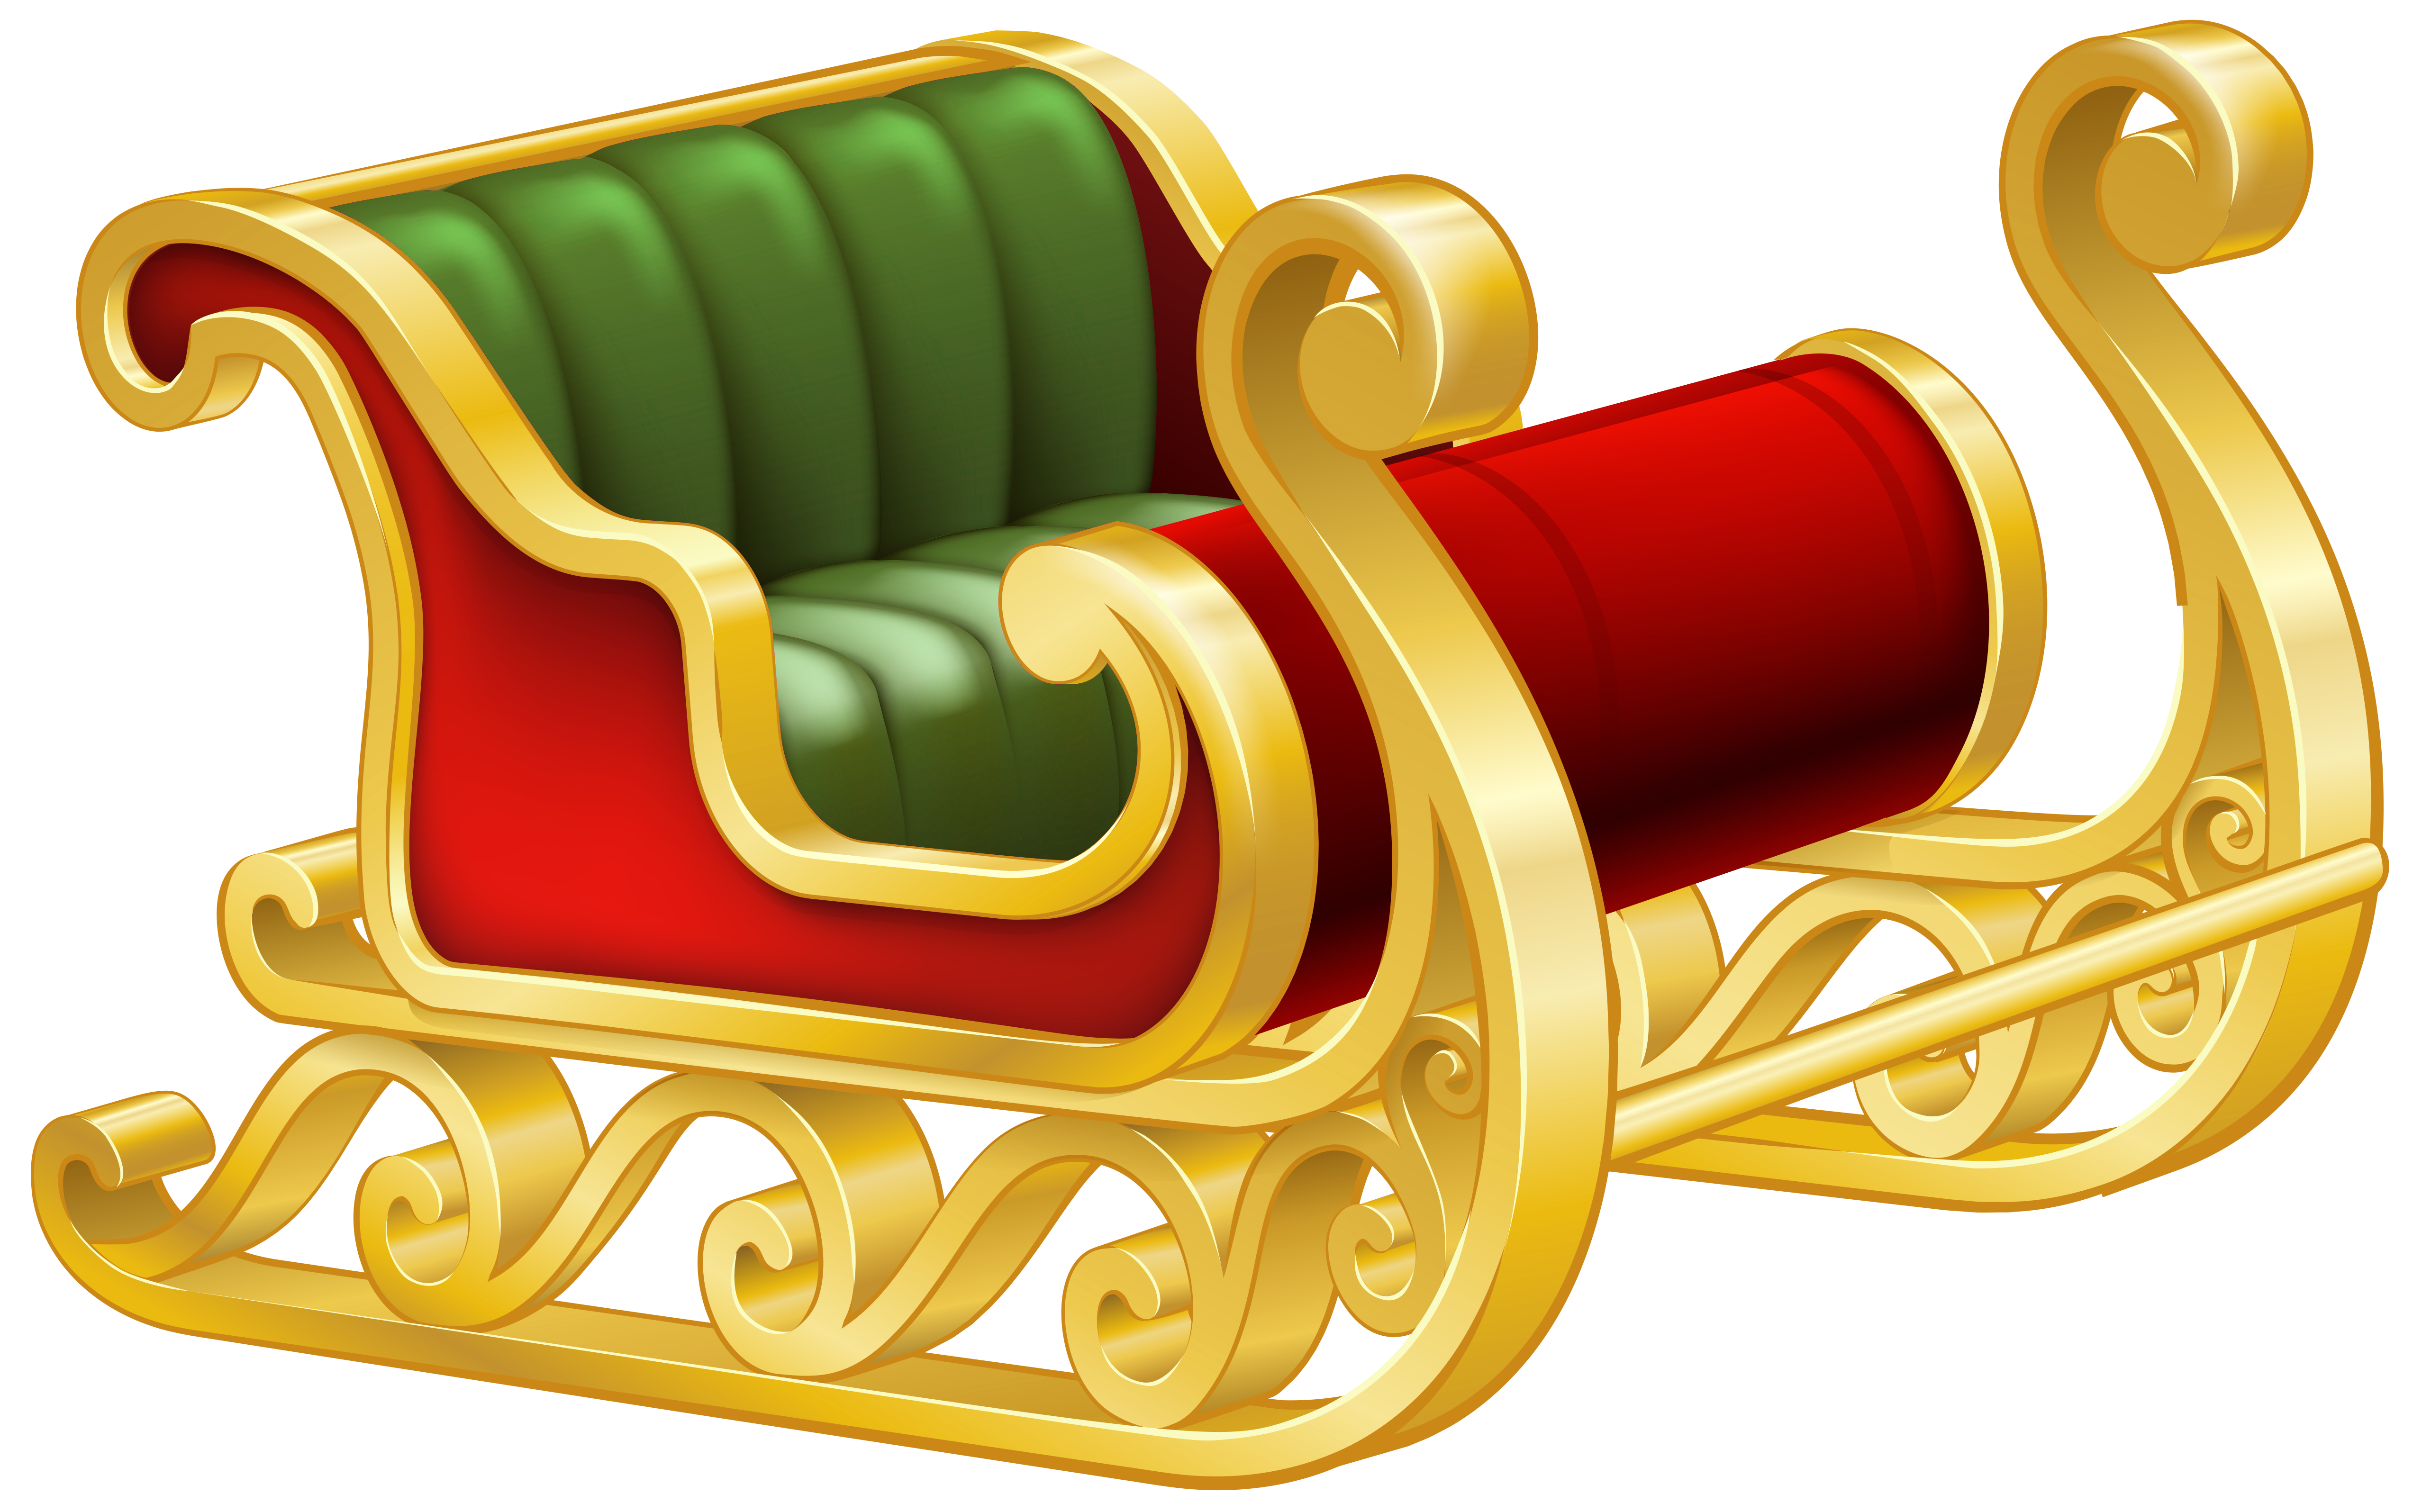 Slegh clipart clipart freeuse download Pin by Jane Perry on Png | Santa sleigh, Christmas sled, Clip art clipart freeuse download